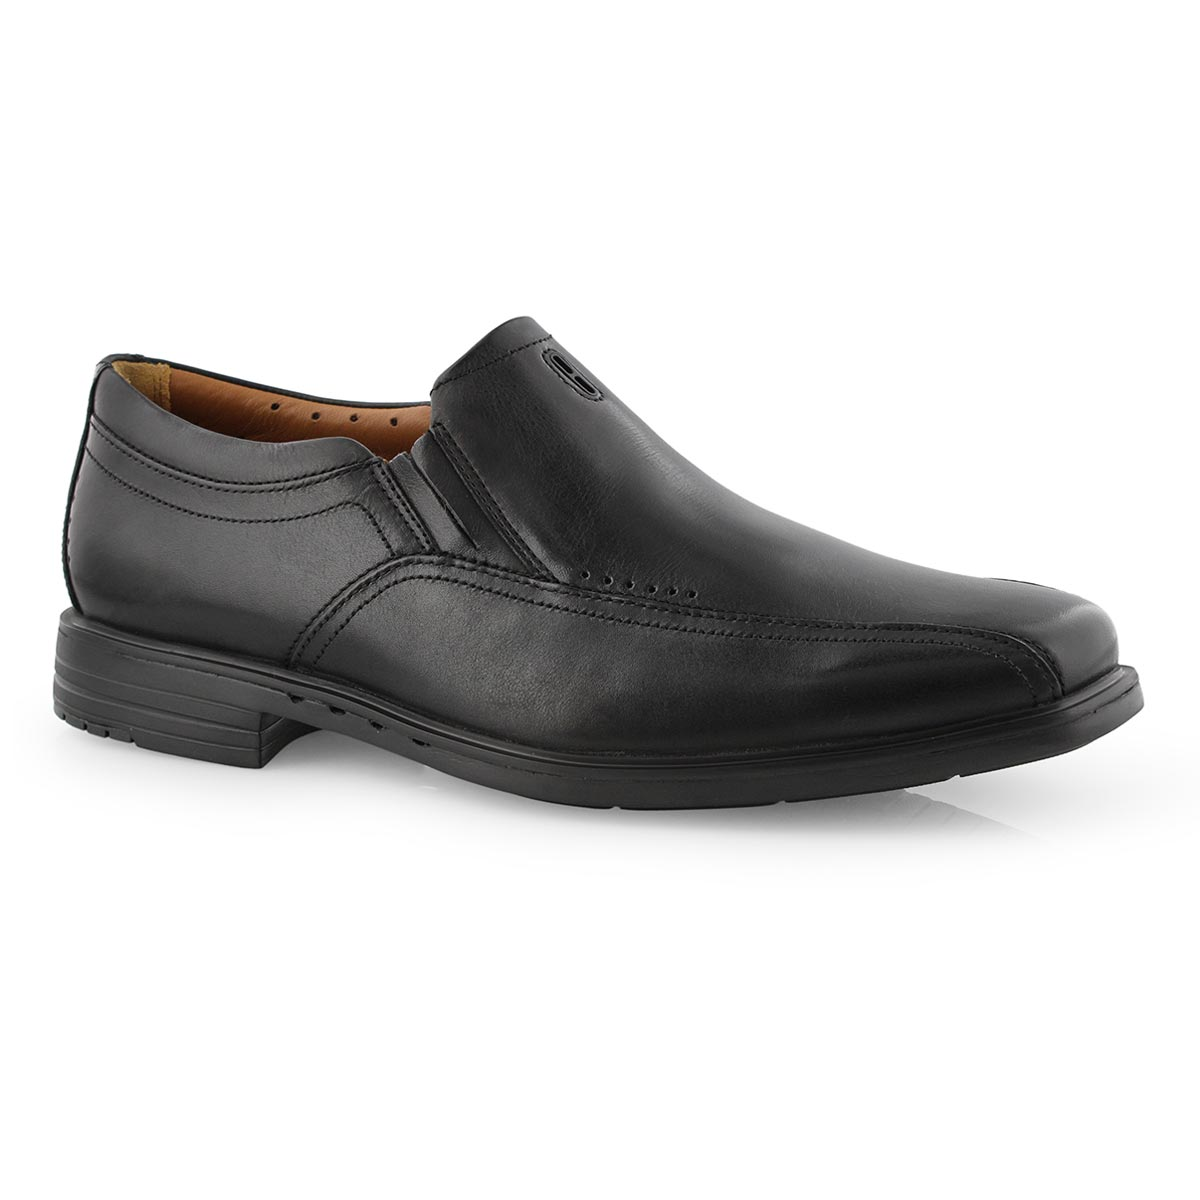 Mns UnSheridan Go black dress shoe-wide